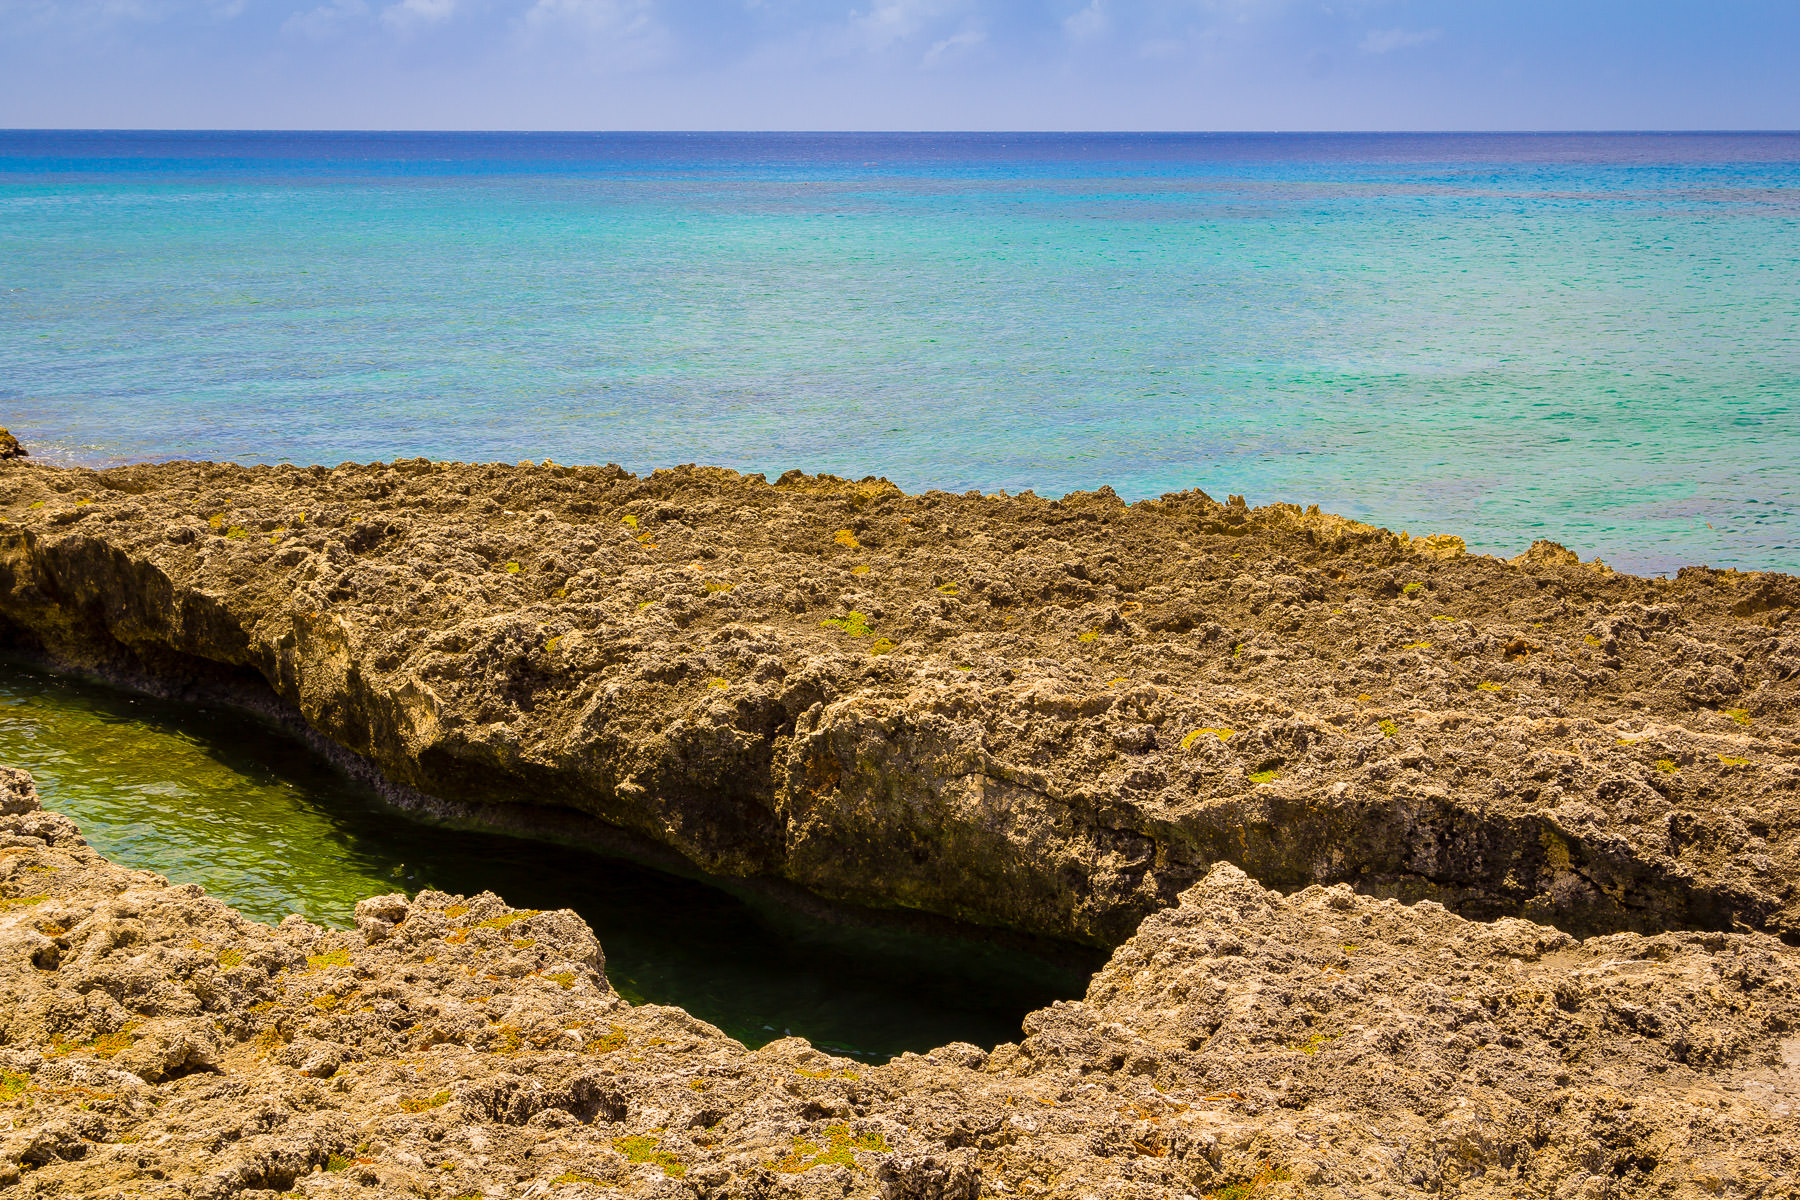 Coral rocks protrude from the Caribbean Sea just off the coast of George Town, Grand Cayman.